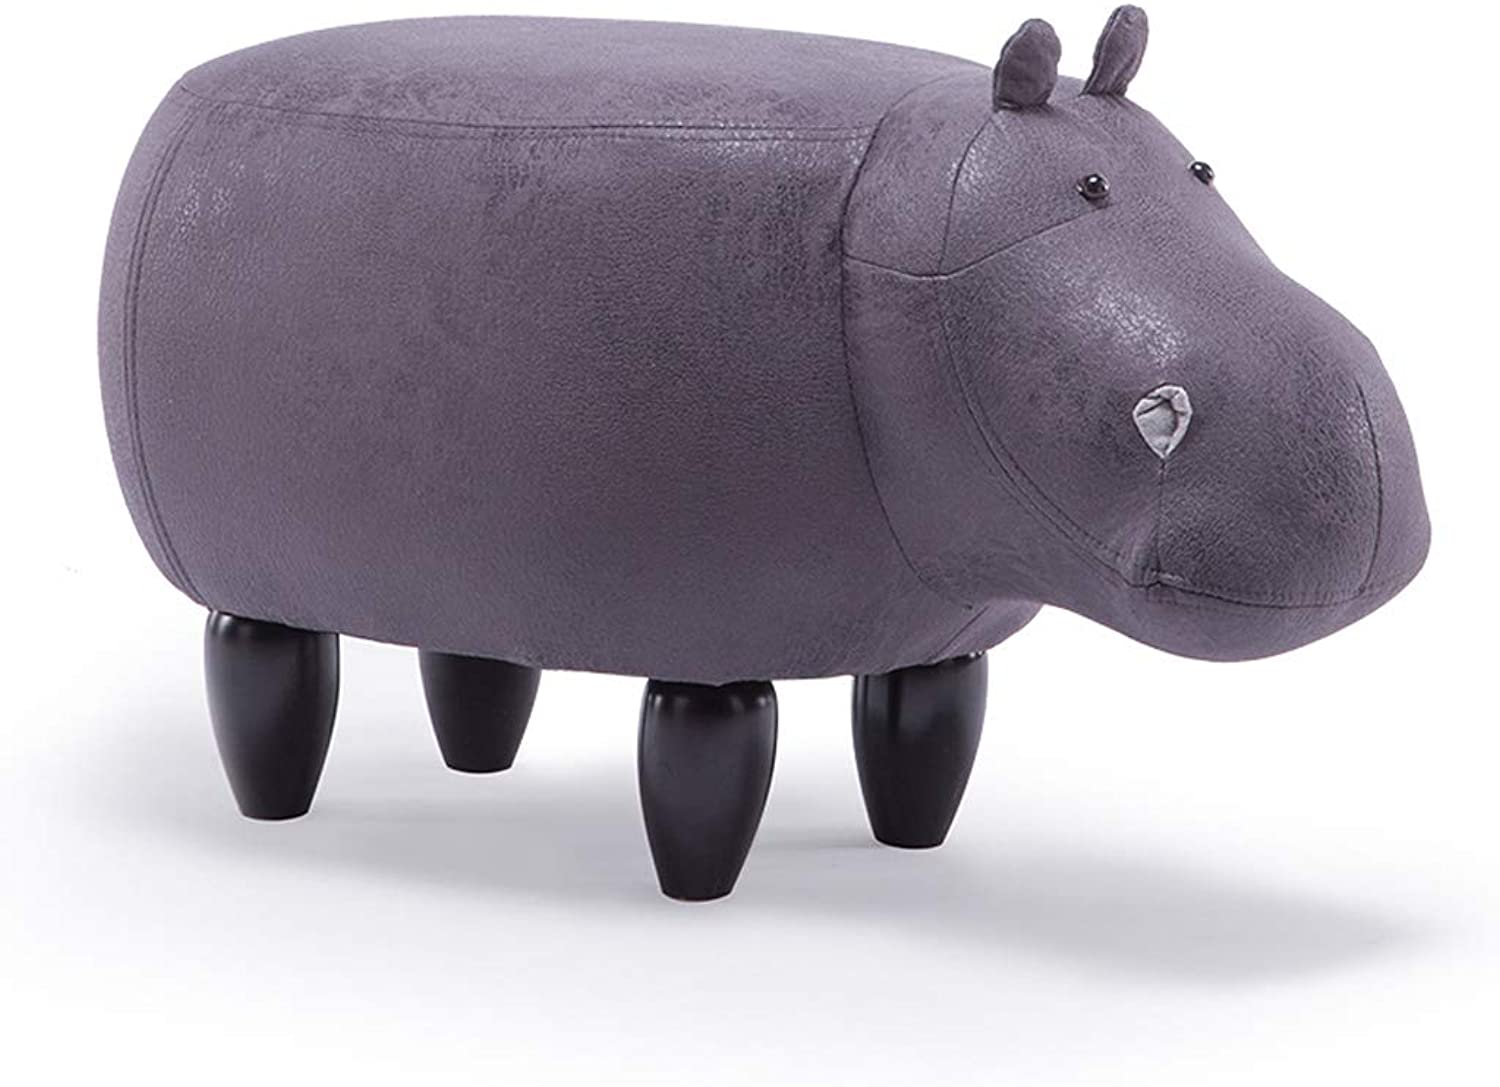 GAIXIA-Sofa stool Creative Cartoon Animal Stool Solid Wood Hippo Footstool Home Sofa Bench Change shoes Bench 37x65cm (color   E, Size   L)